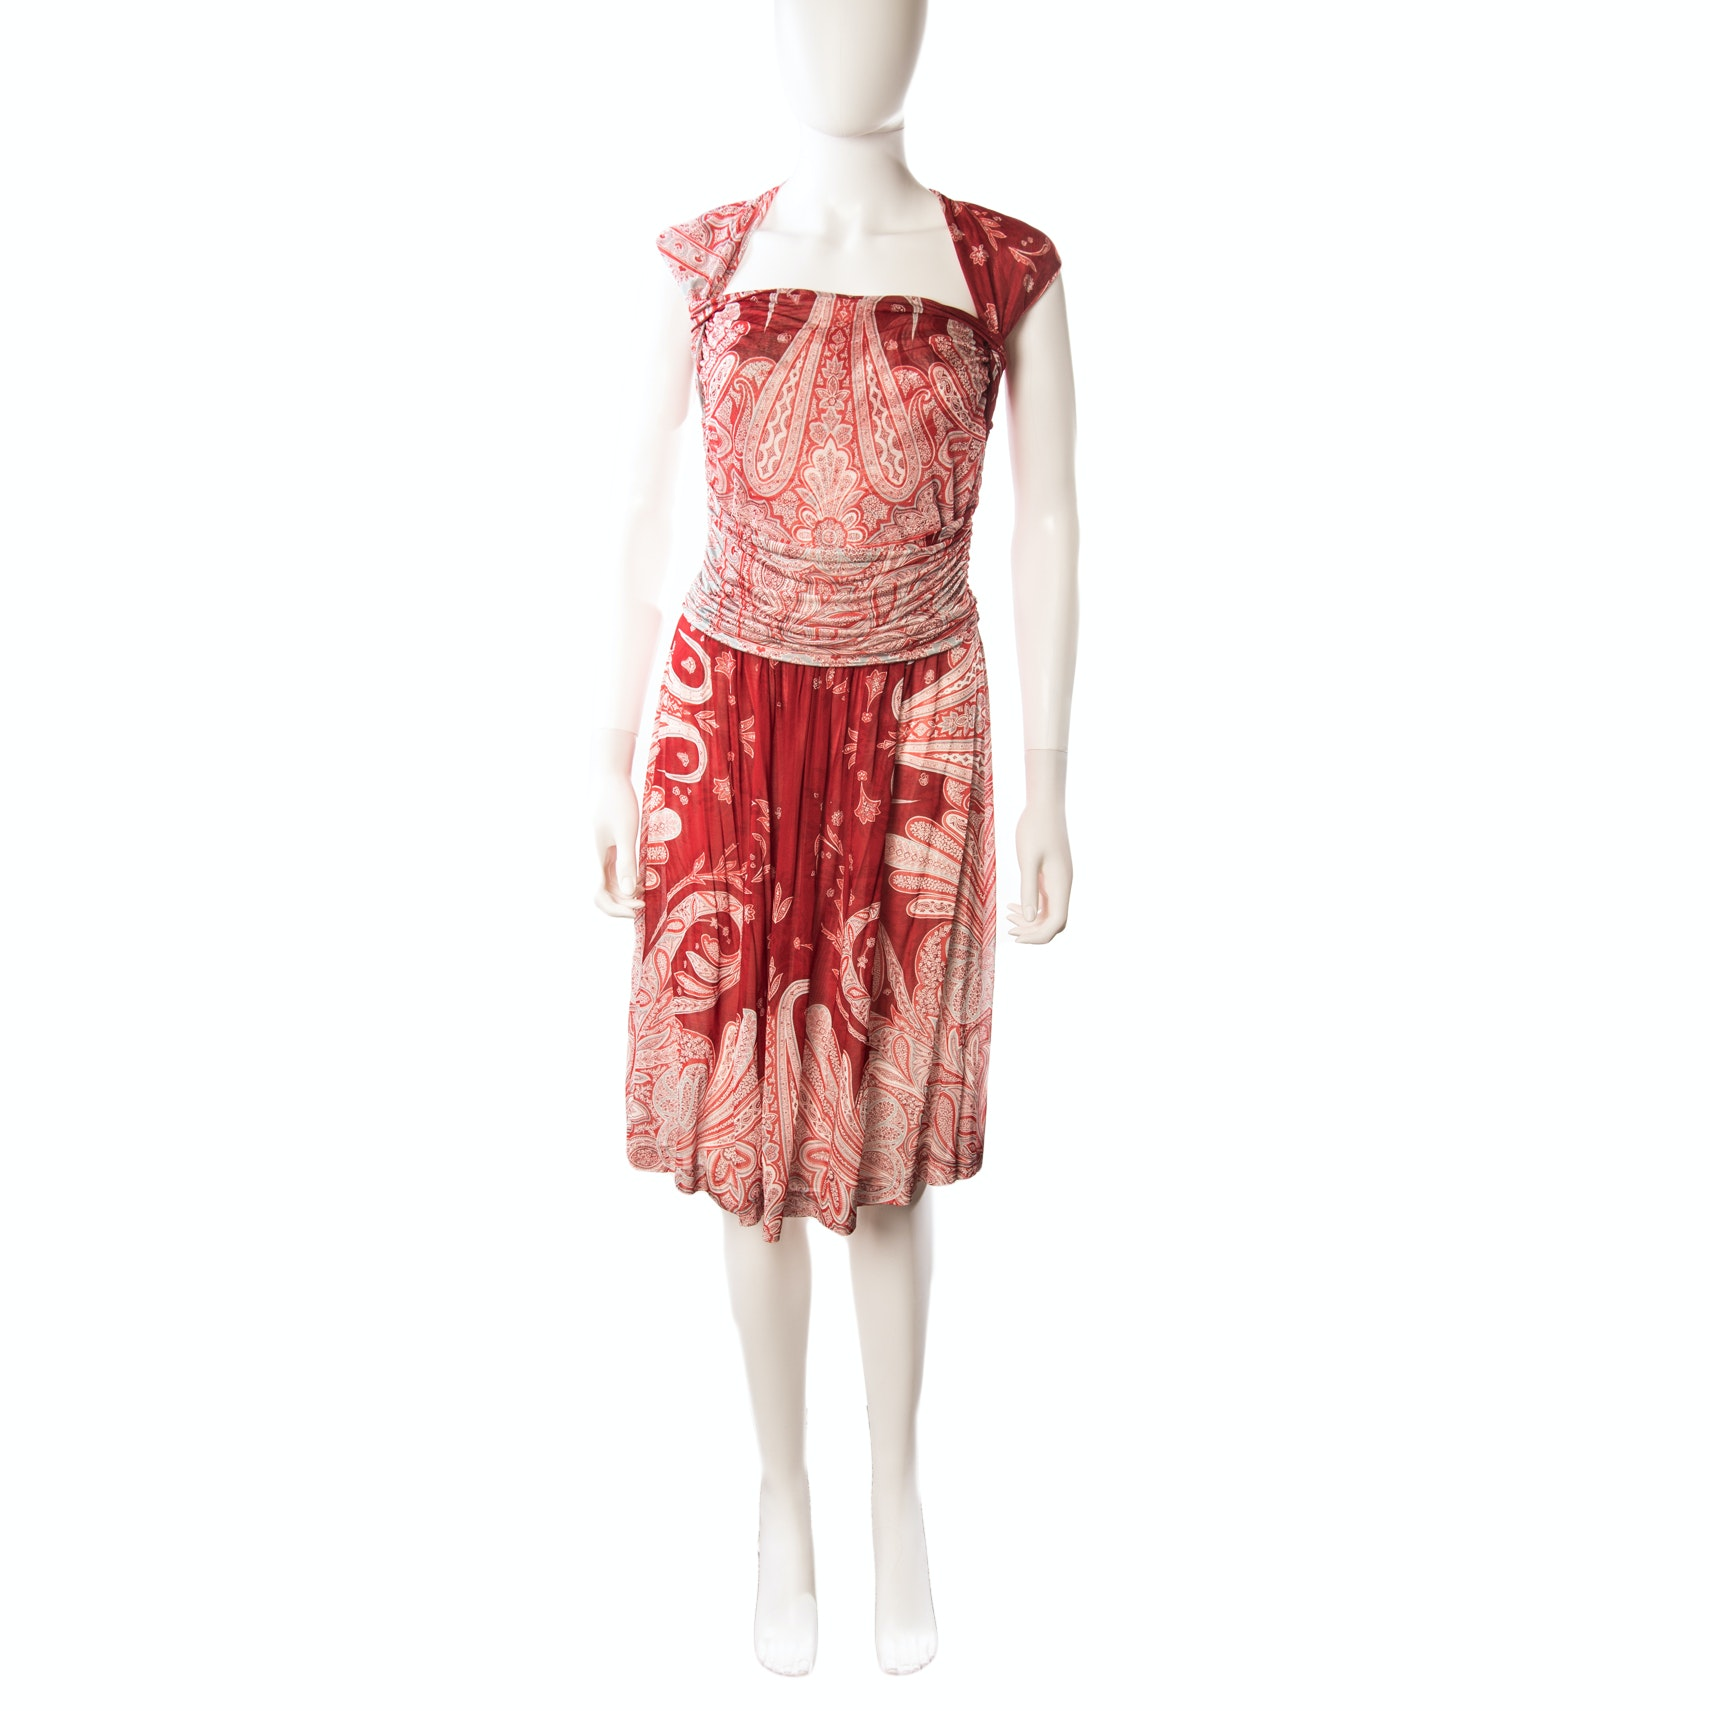 Etro Milano Paisley Print Sleeveless Sheath Dress with Square Neckline